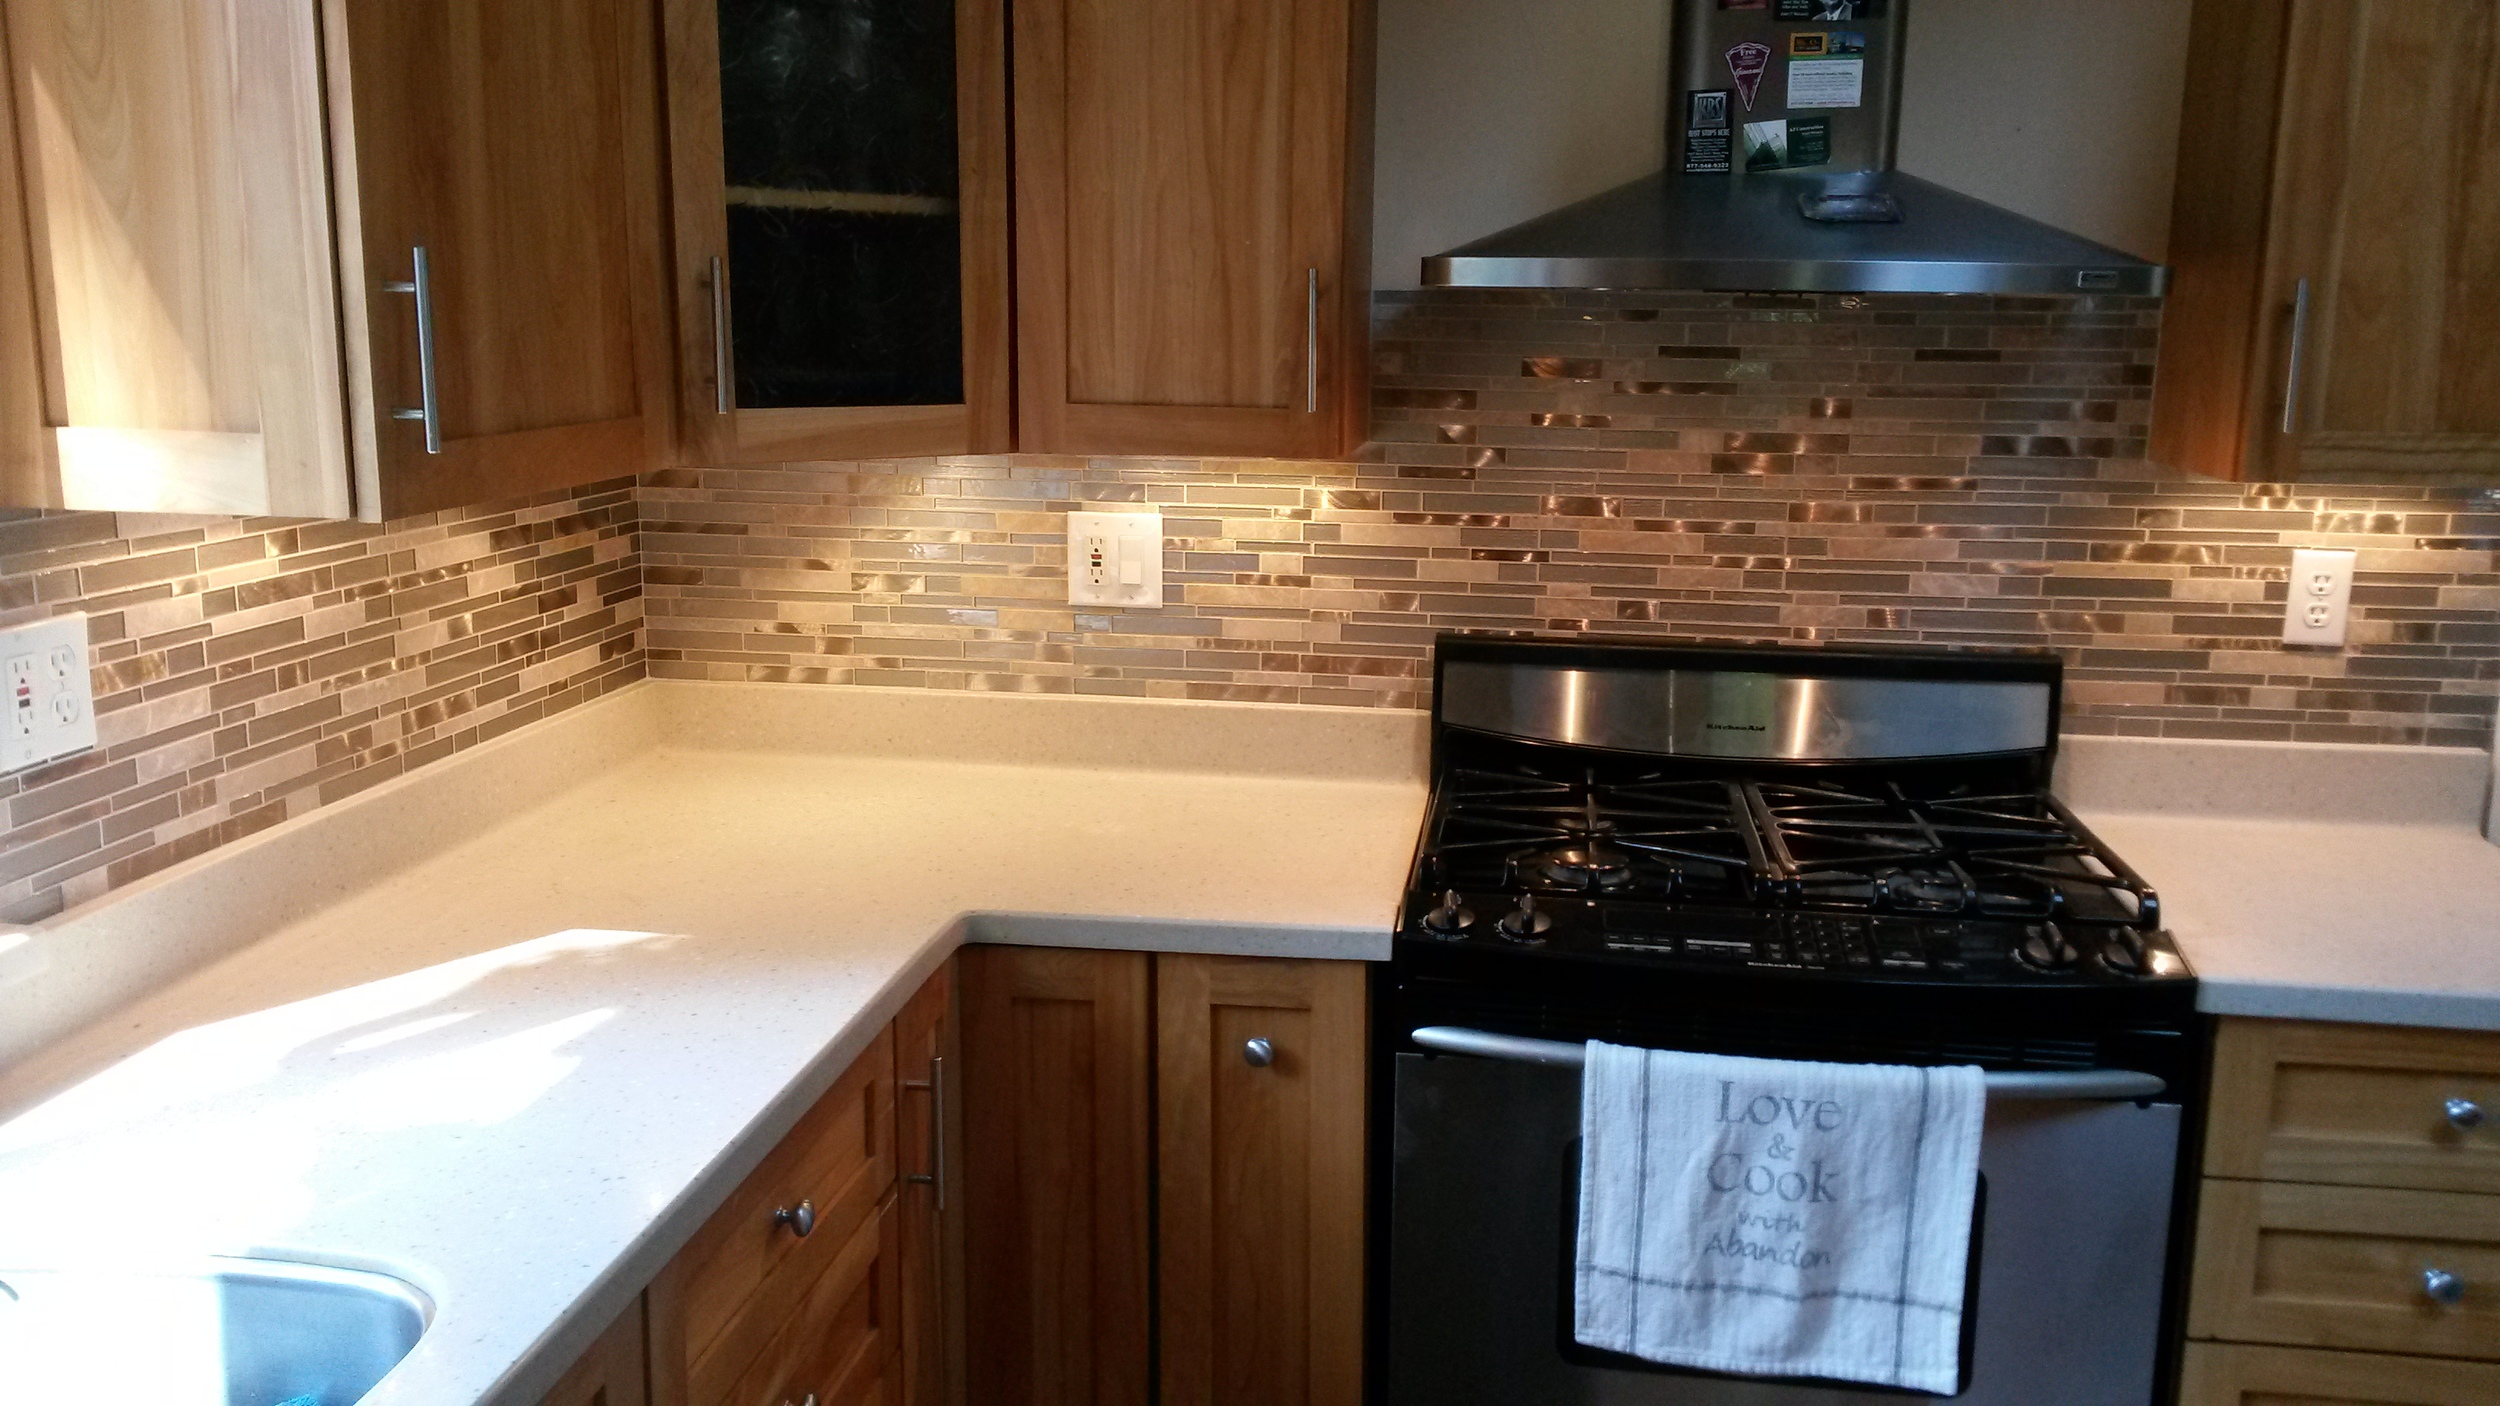 Finished Kitchen Backsplash Wall 2 and 3.jpg